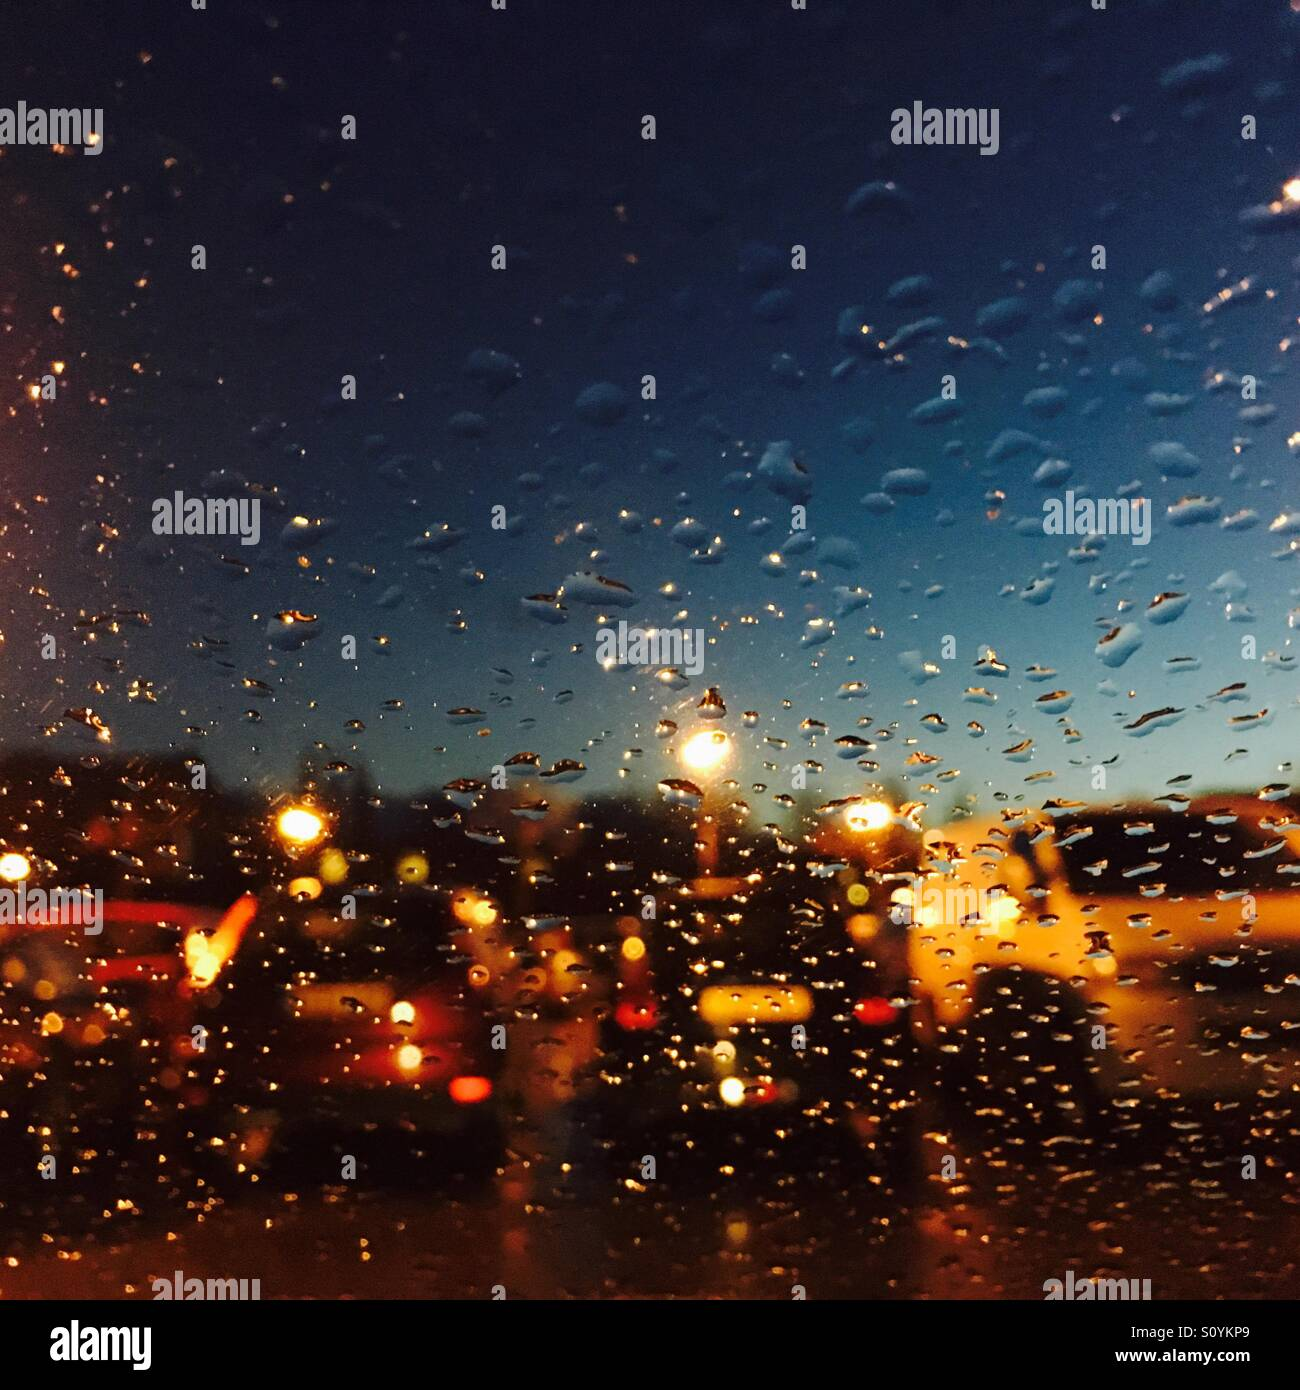 cars through a rain spattered car window at night stock photo royalty free image 310394849 alamy. Black Bedroom Furniture Sets. Home Design Ideas